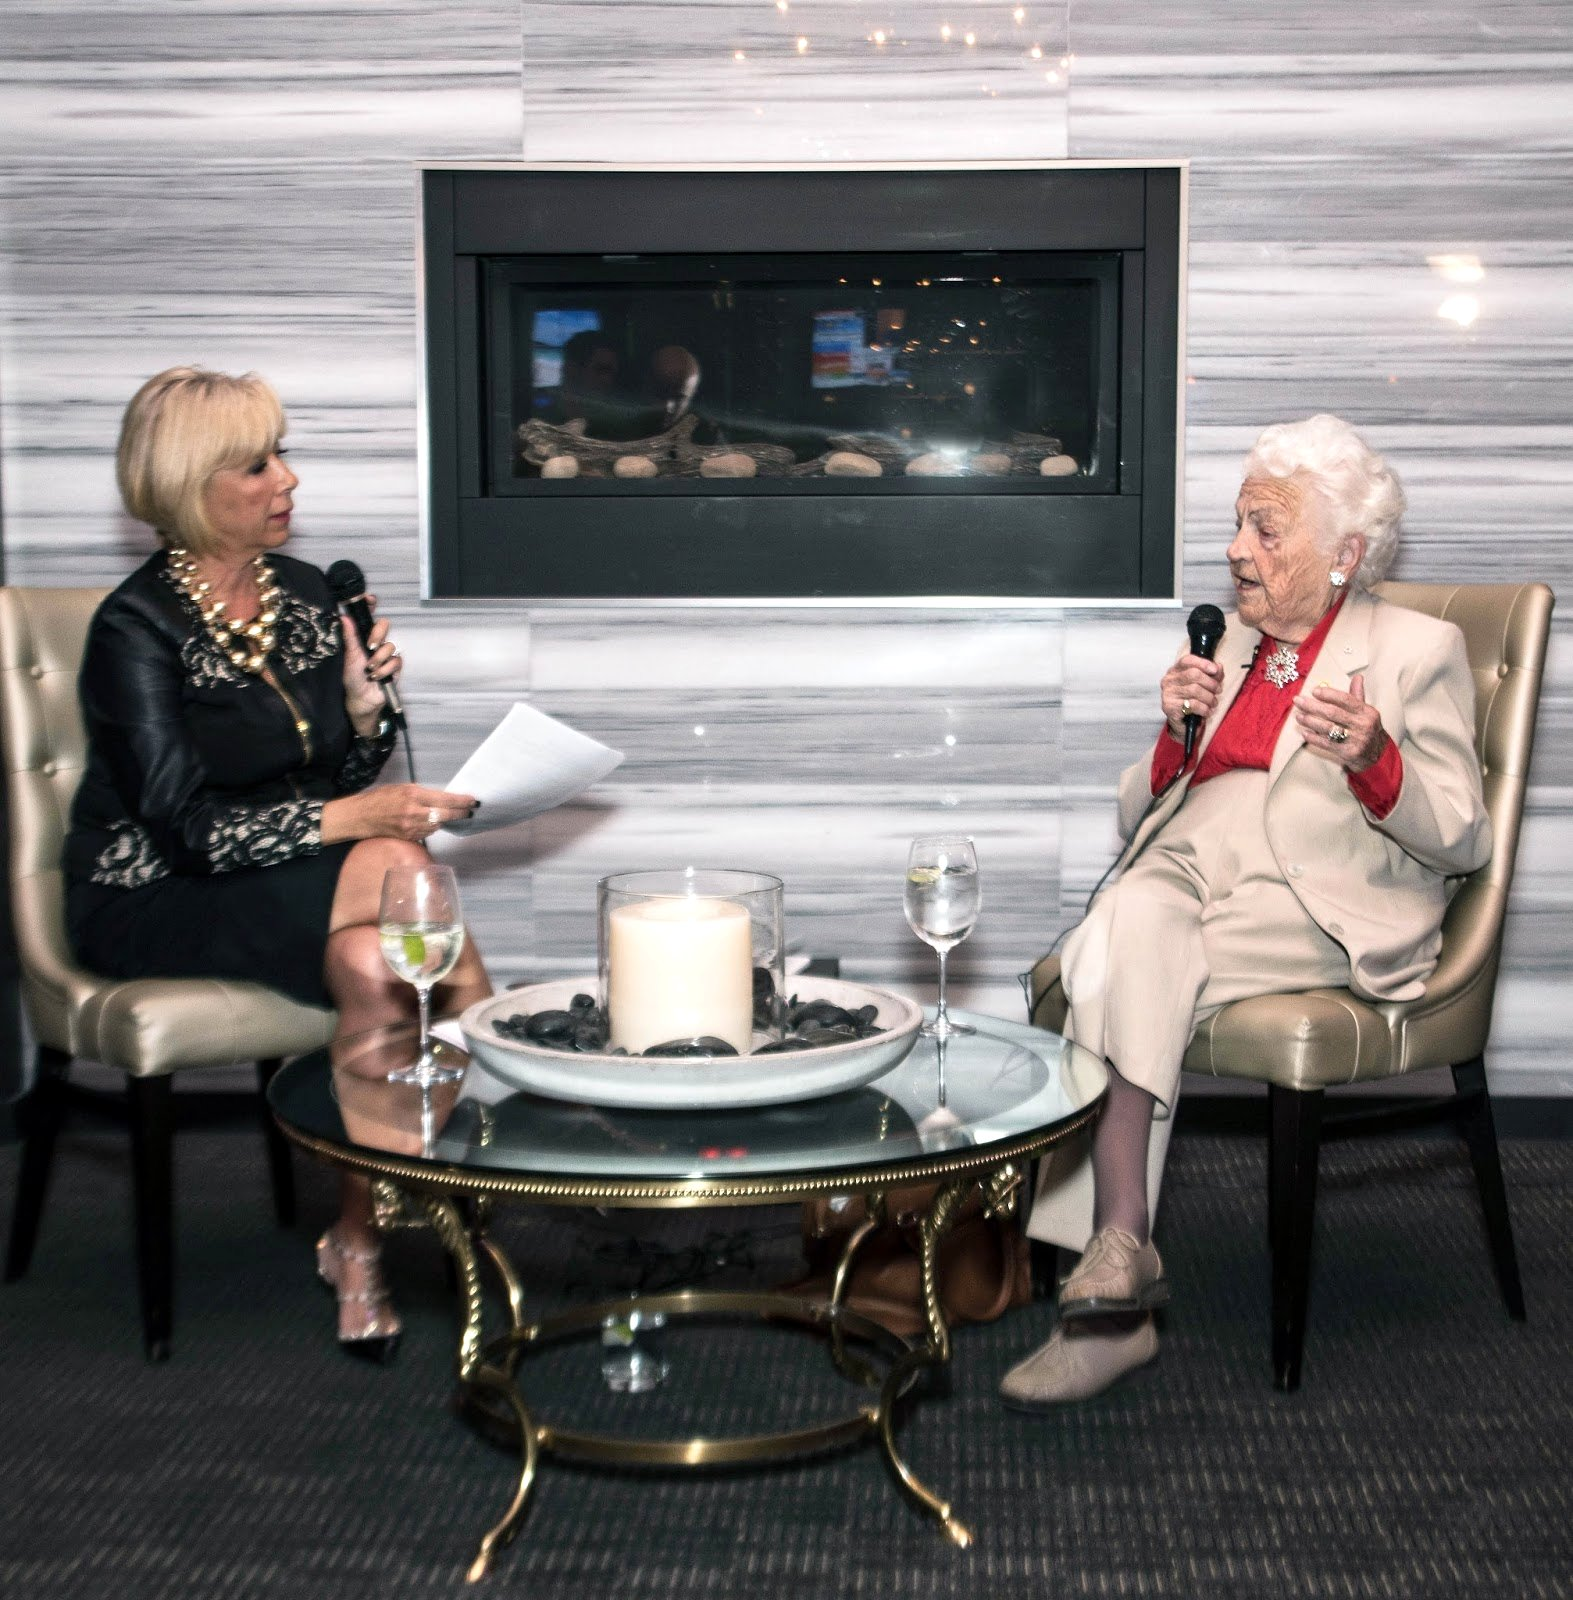 Carmela Kapeleris interviews Hazel McCallion at Cagney's Restaurant in Streetsville - Photo by Lisa Mininni Photography http://4.bp.blogspot.com/-uSfKr6U33PI/VibK0CYCVFI/AAAAAAAAB6U/TfoPaN4db-8/s1600/20151019-DSC_2960%2Bcopy.jpg